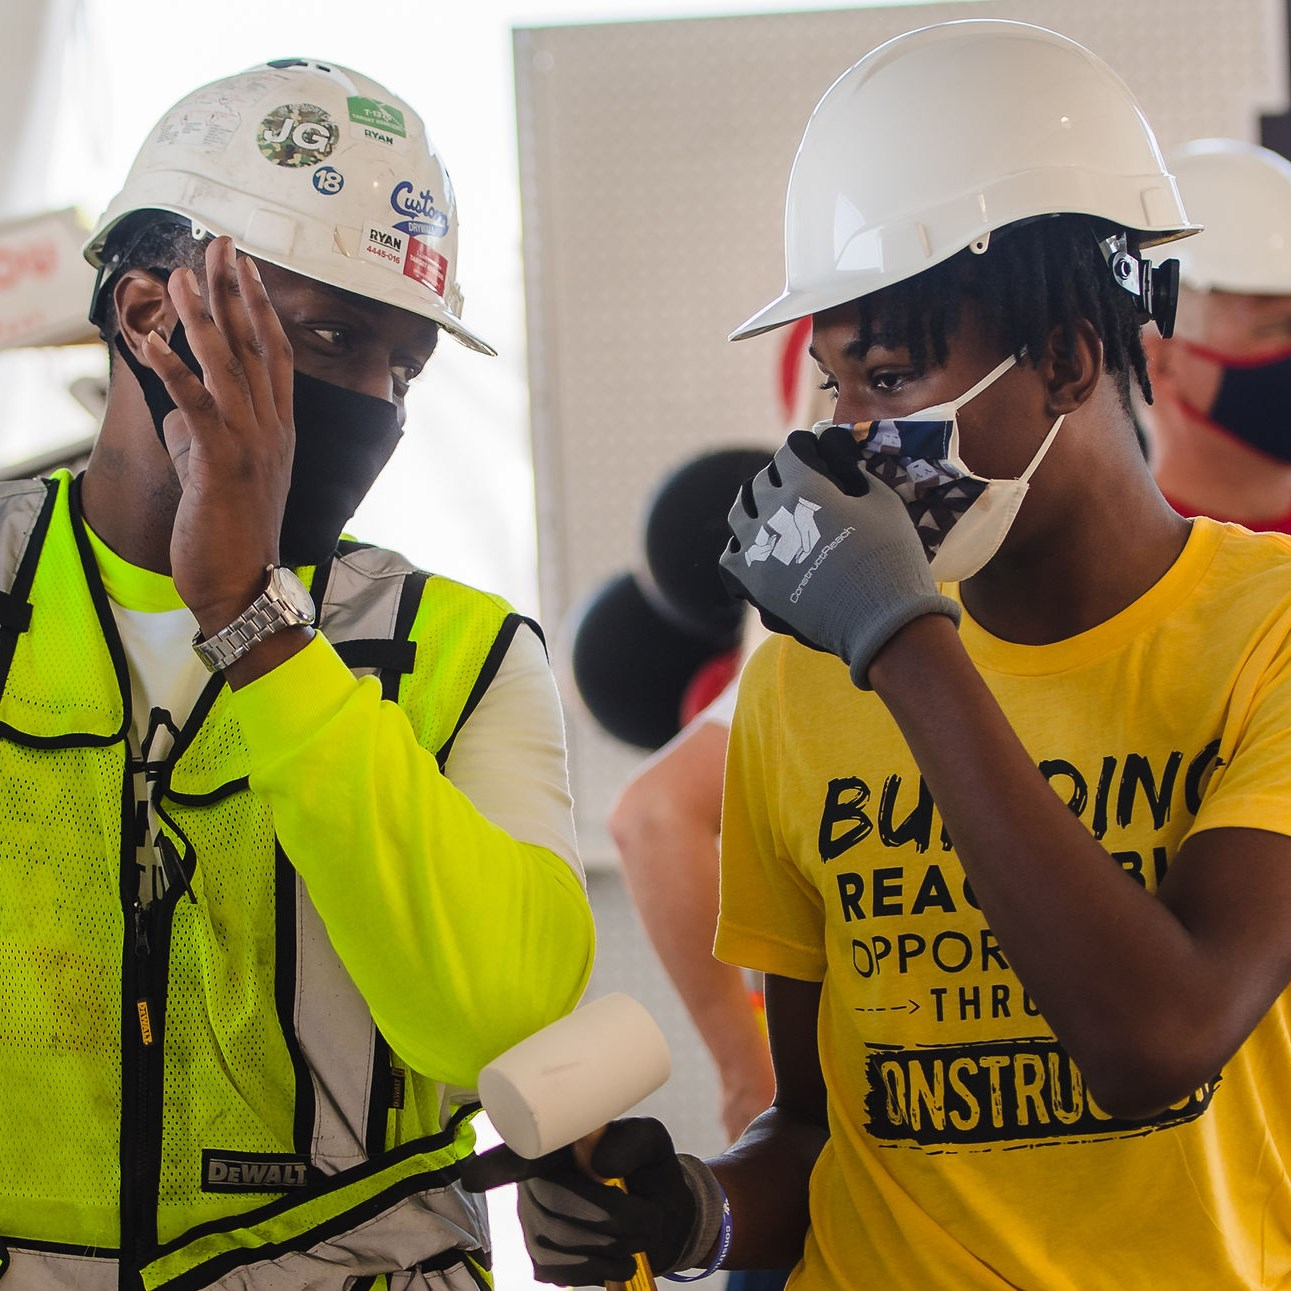 Two men in construction hard hats and masks discuss a project.